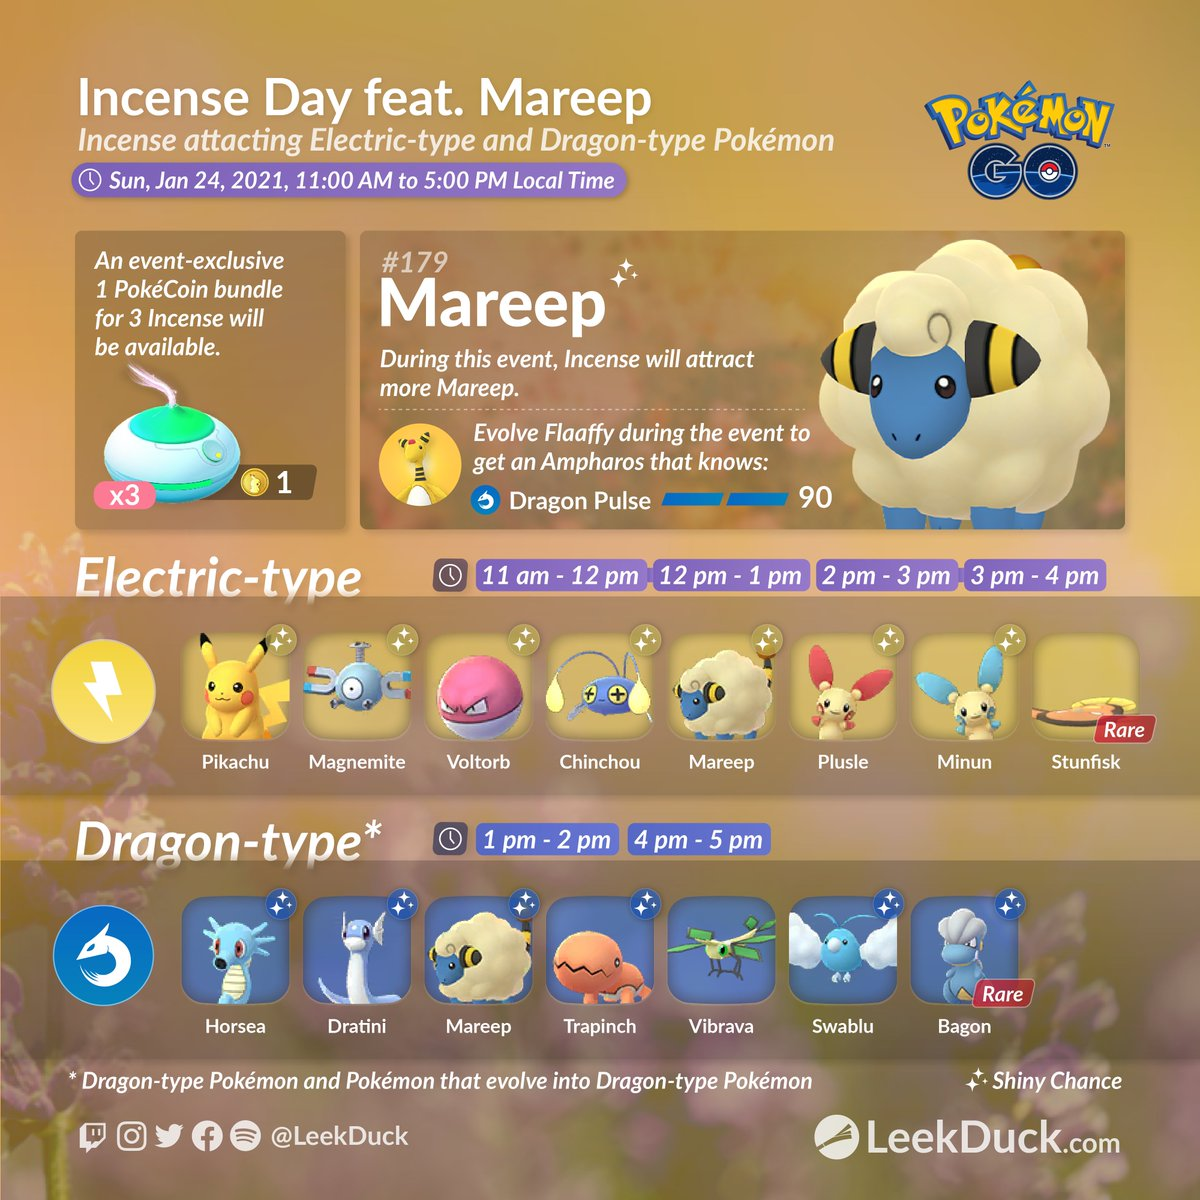 Incense Day featuring Mareep - Event Overview  • Different Pokémon will be attracted to Incense at different times.  • Incense will last 1 hour (not increased)  Full Details: